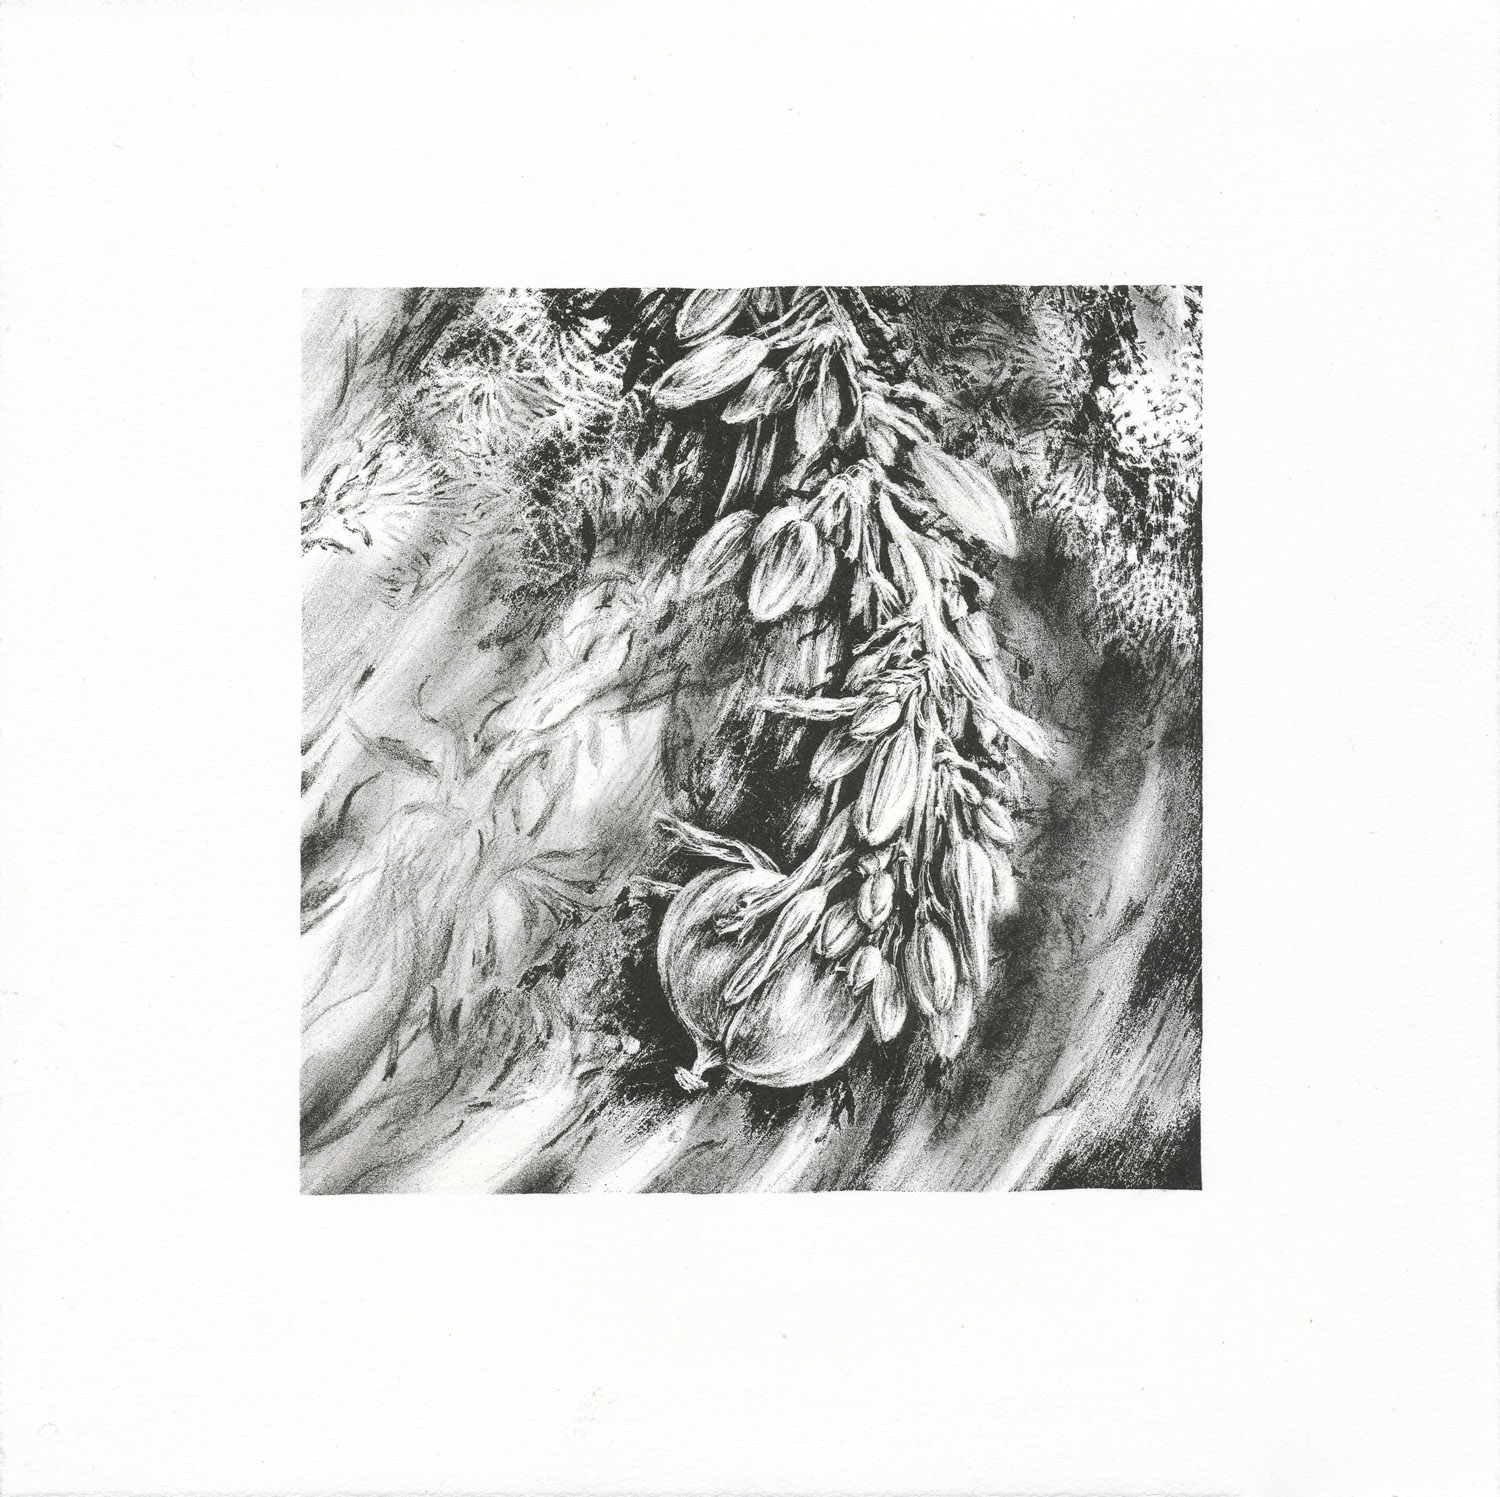 Sway, lithograph, 26 x 26 cm, edition of 8, 2012